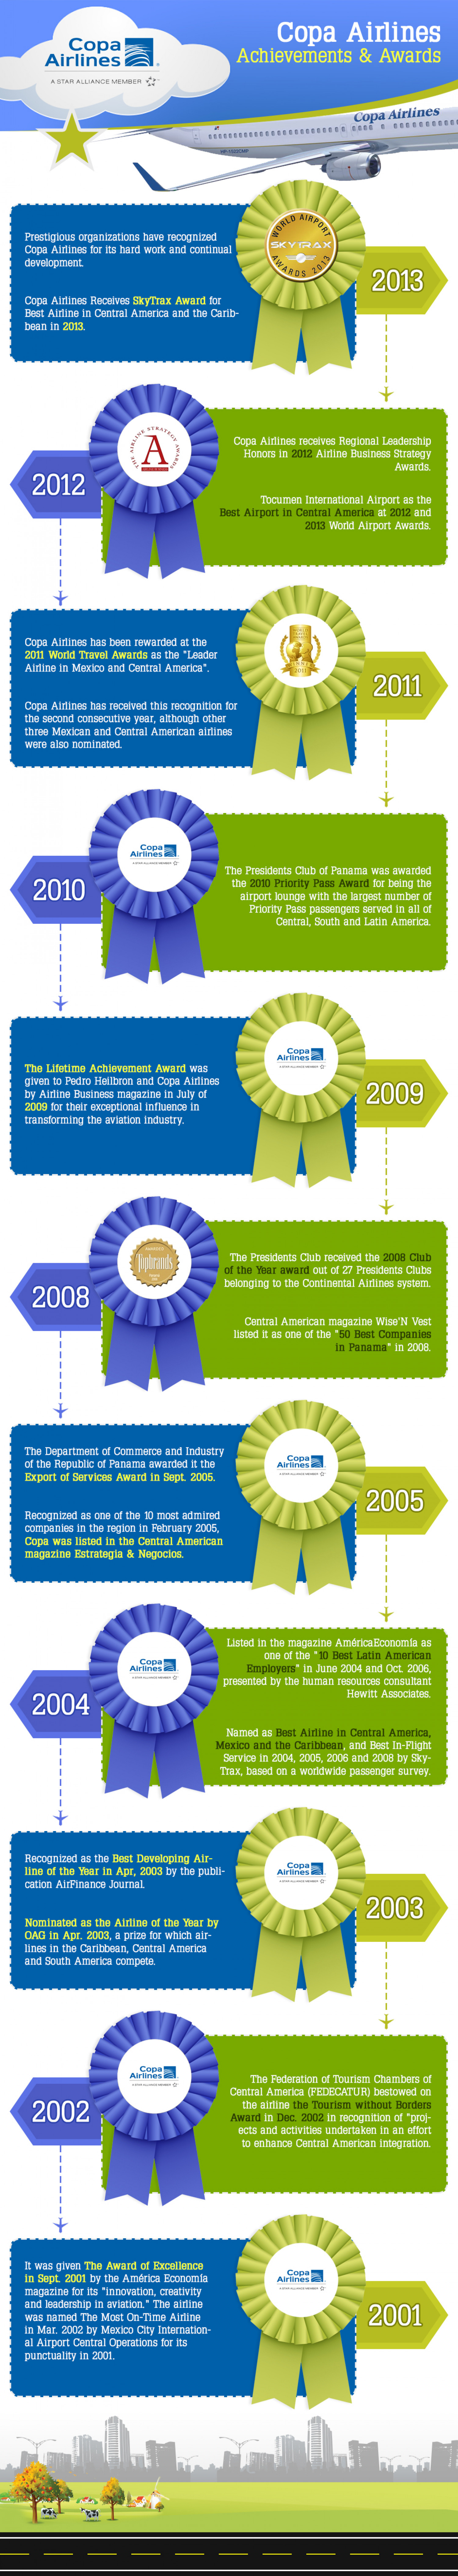 Copa Airlines - Achievements & Awards Infographic